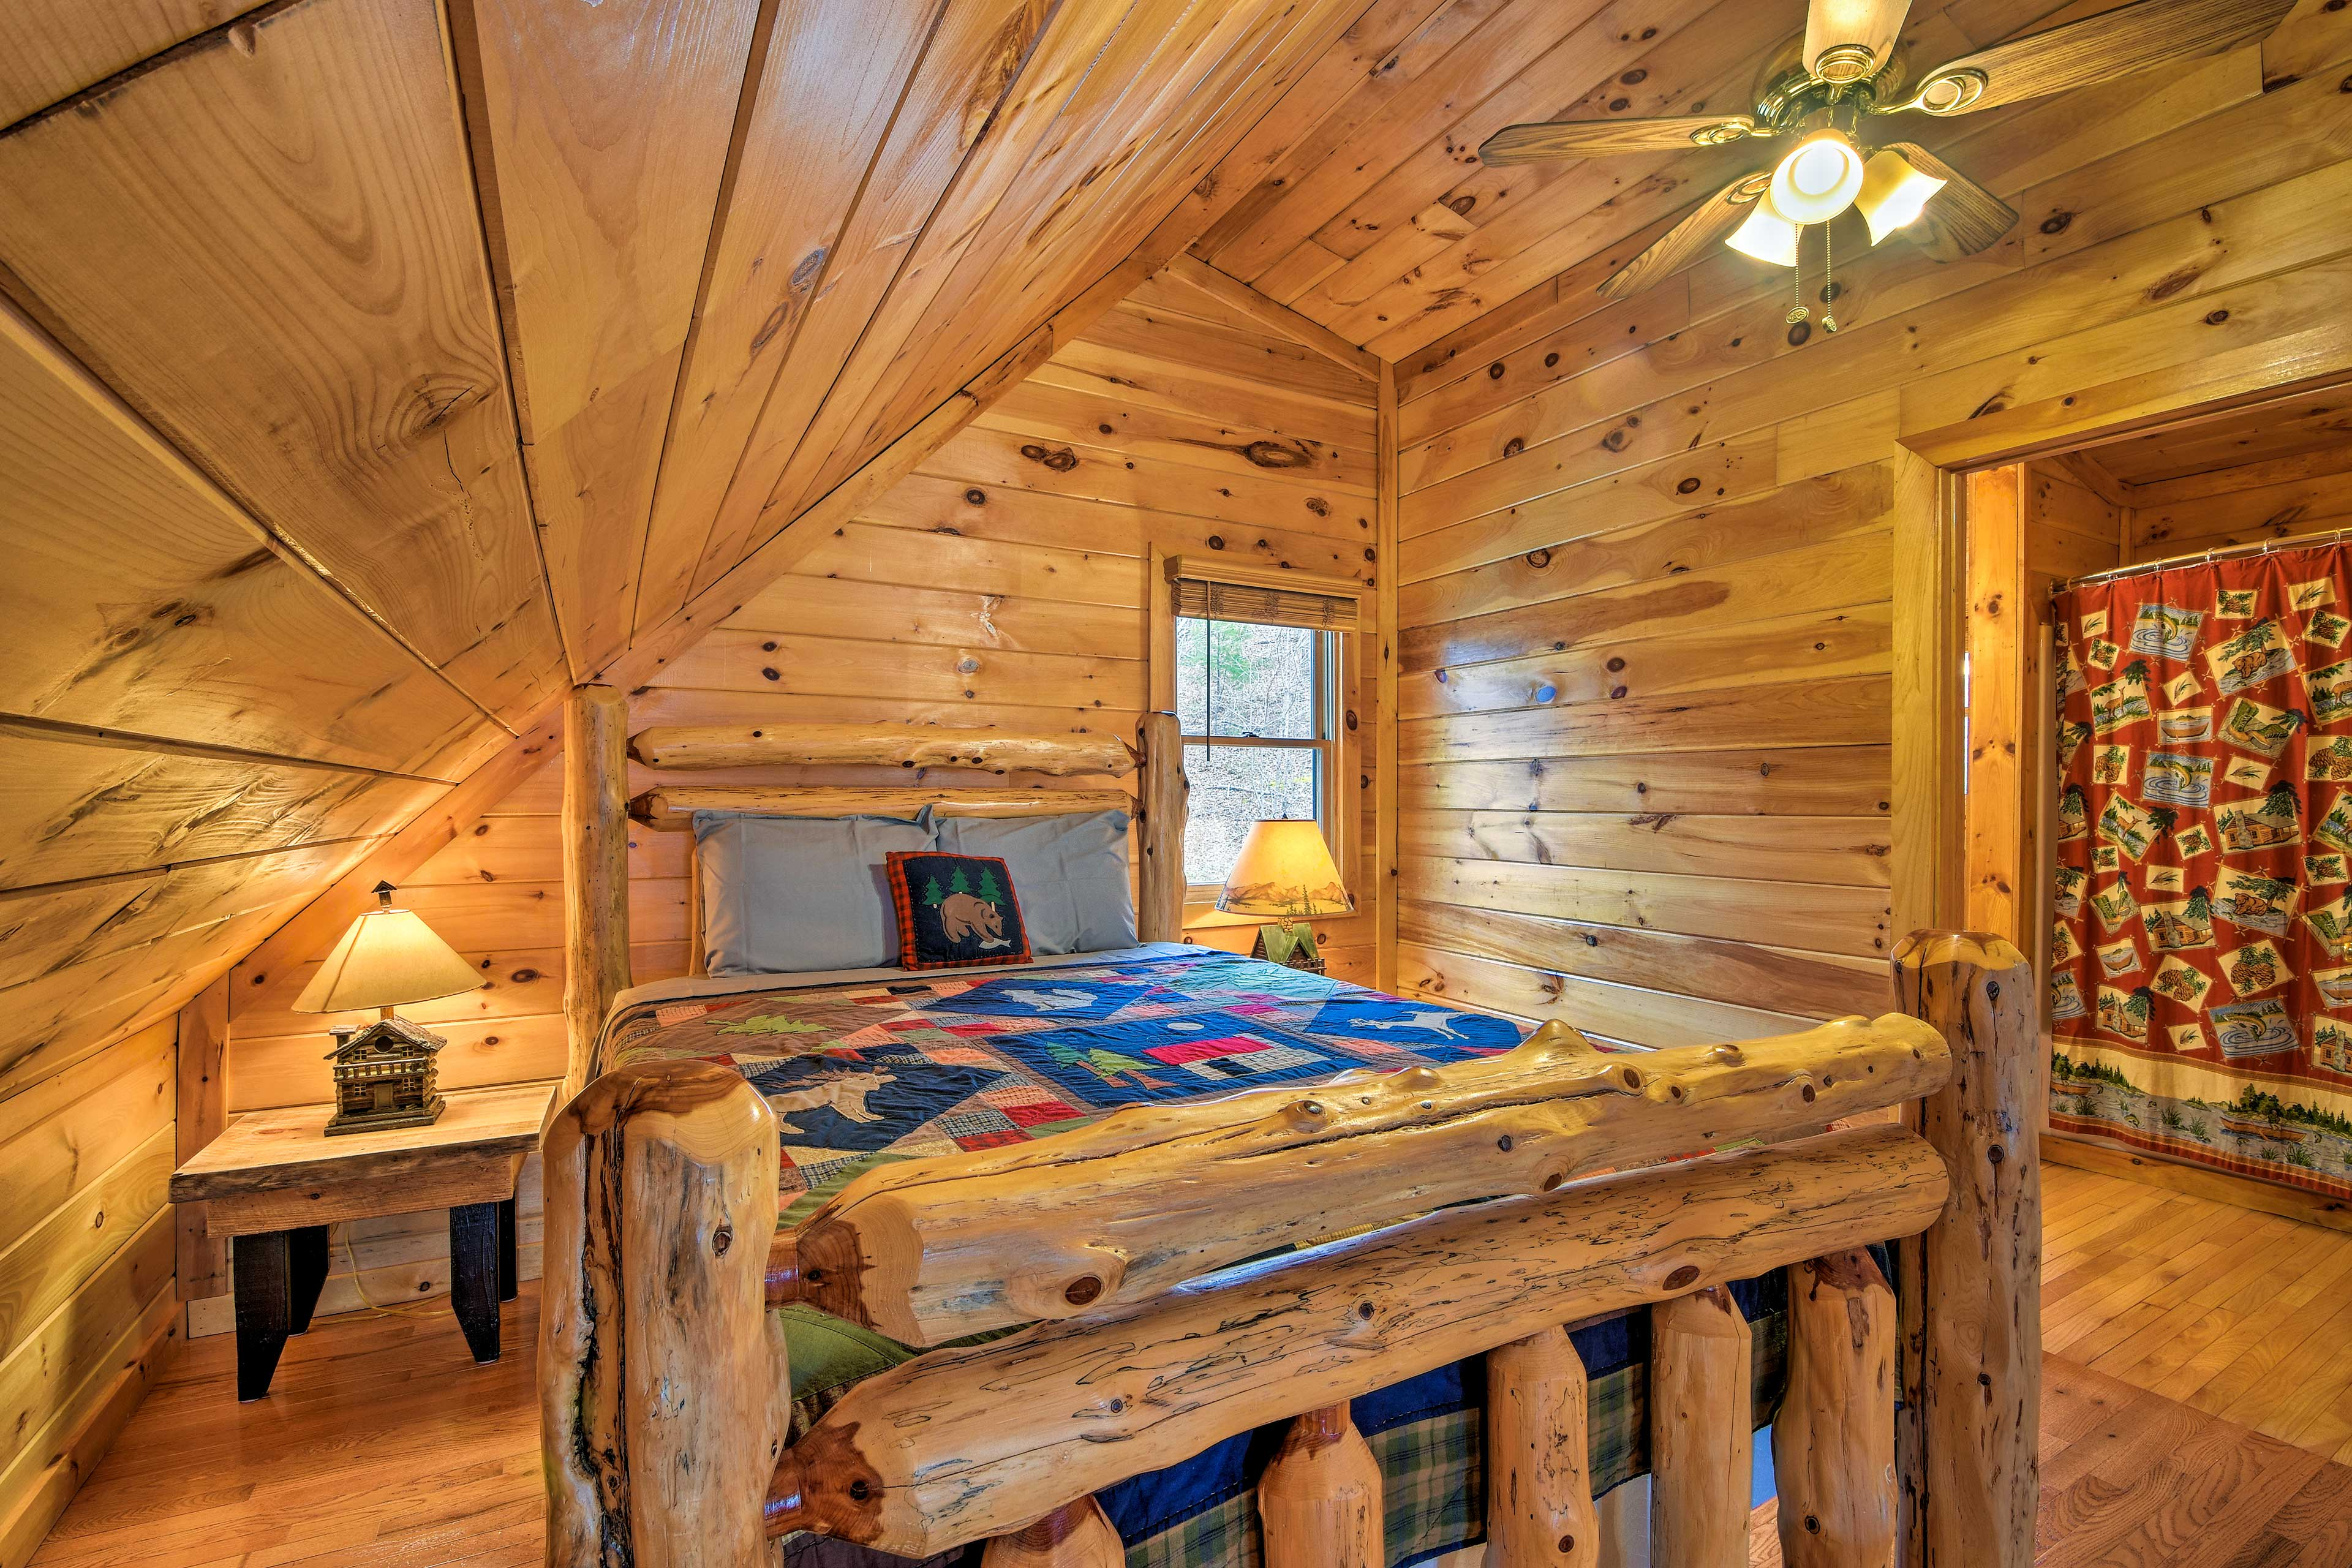 Find a full bed in the loft!